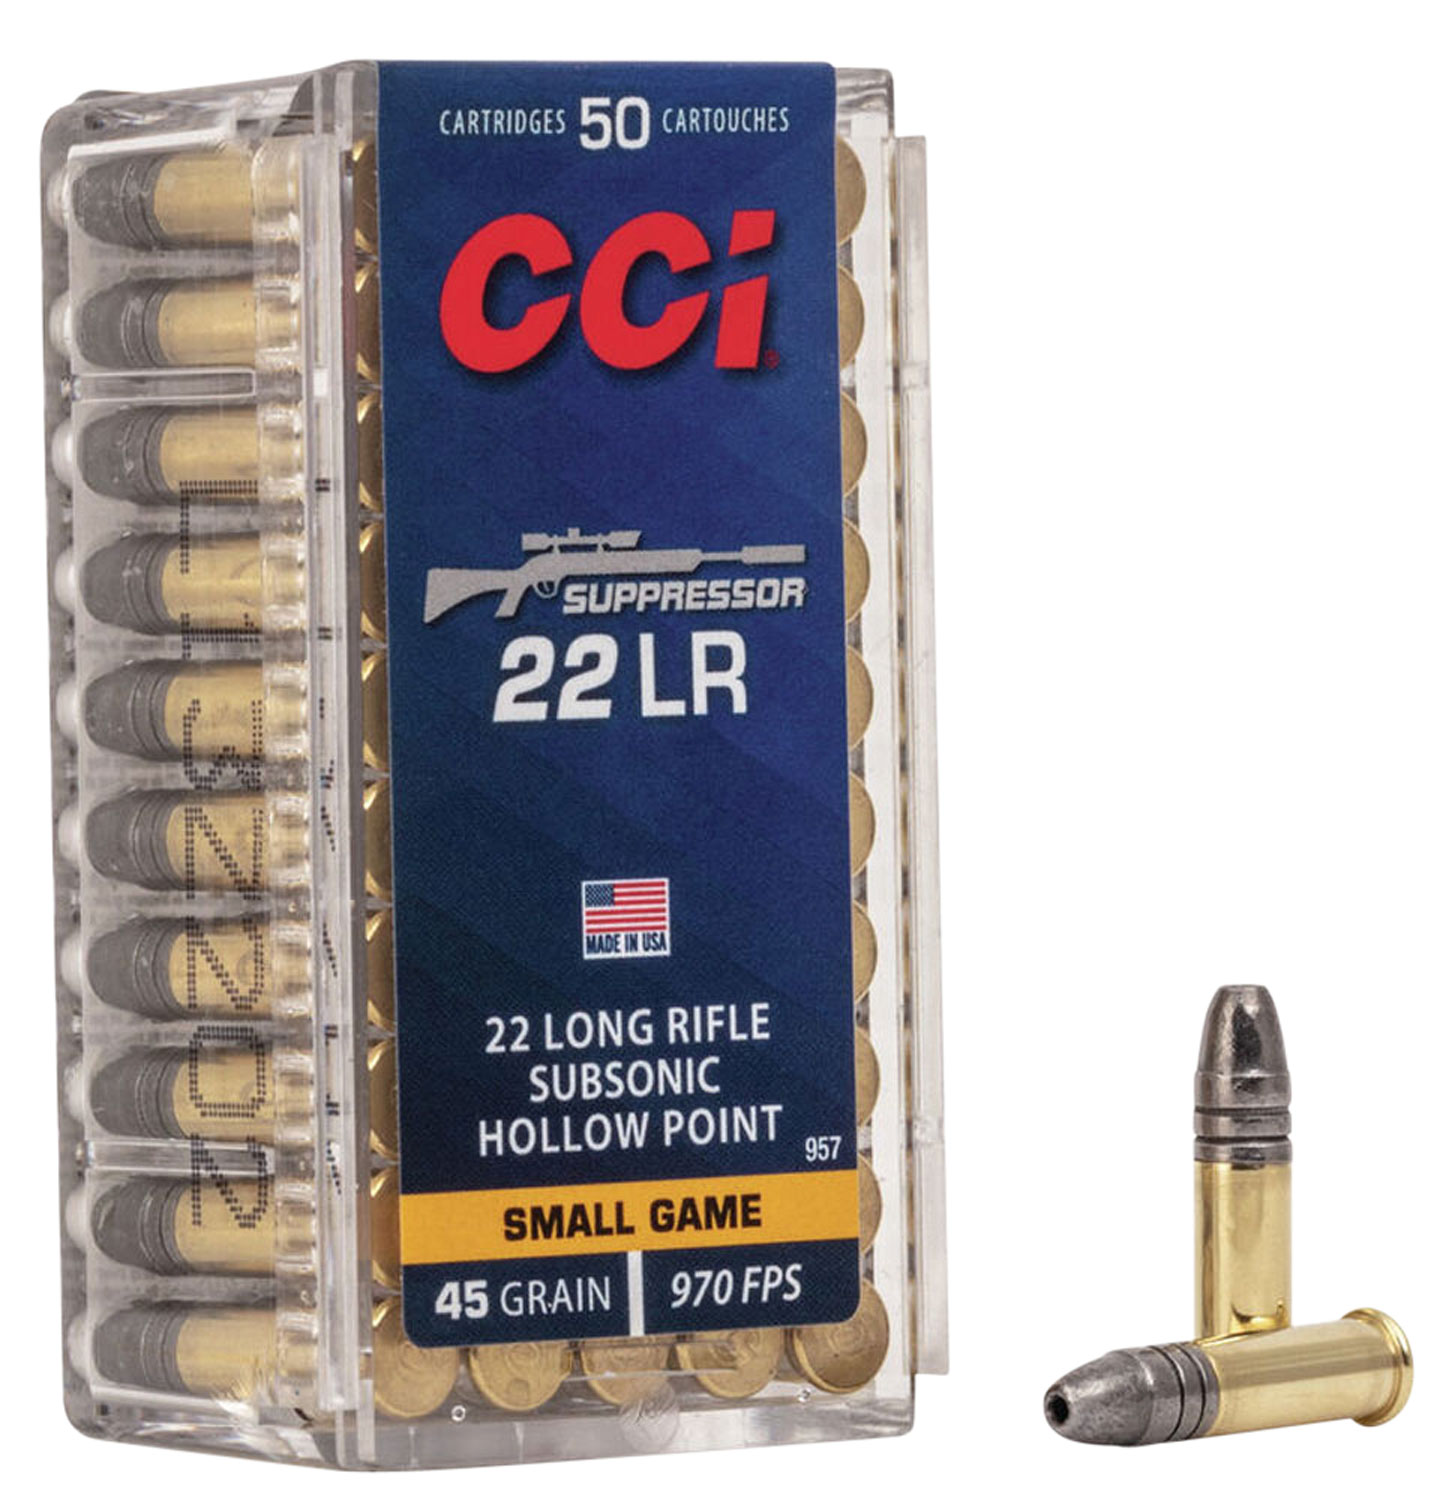 CCI 957 Suppressor 22 Long Rifle SubSonic Hollow Point 45 GR 50Box/100Case